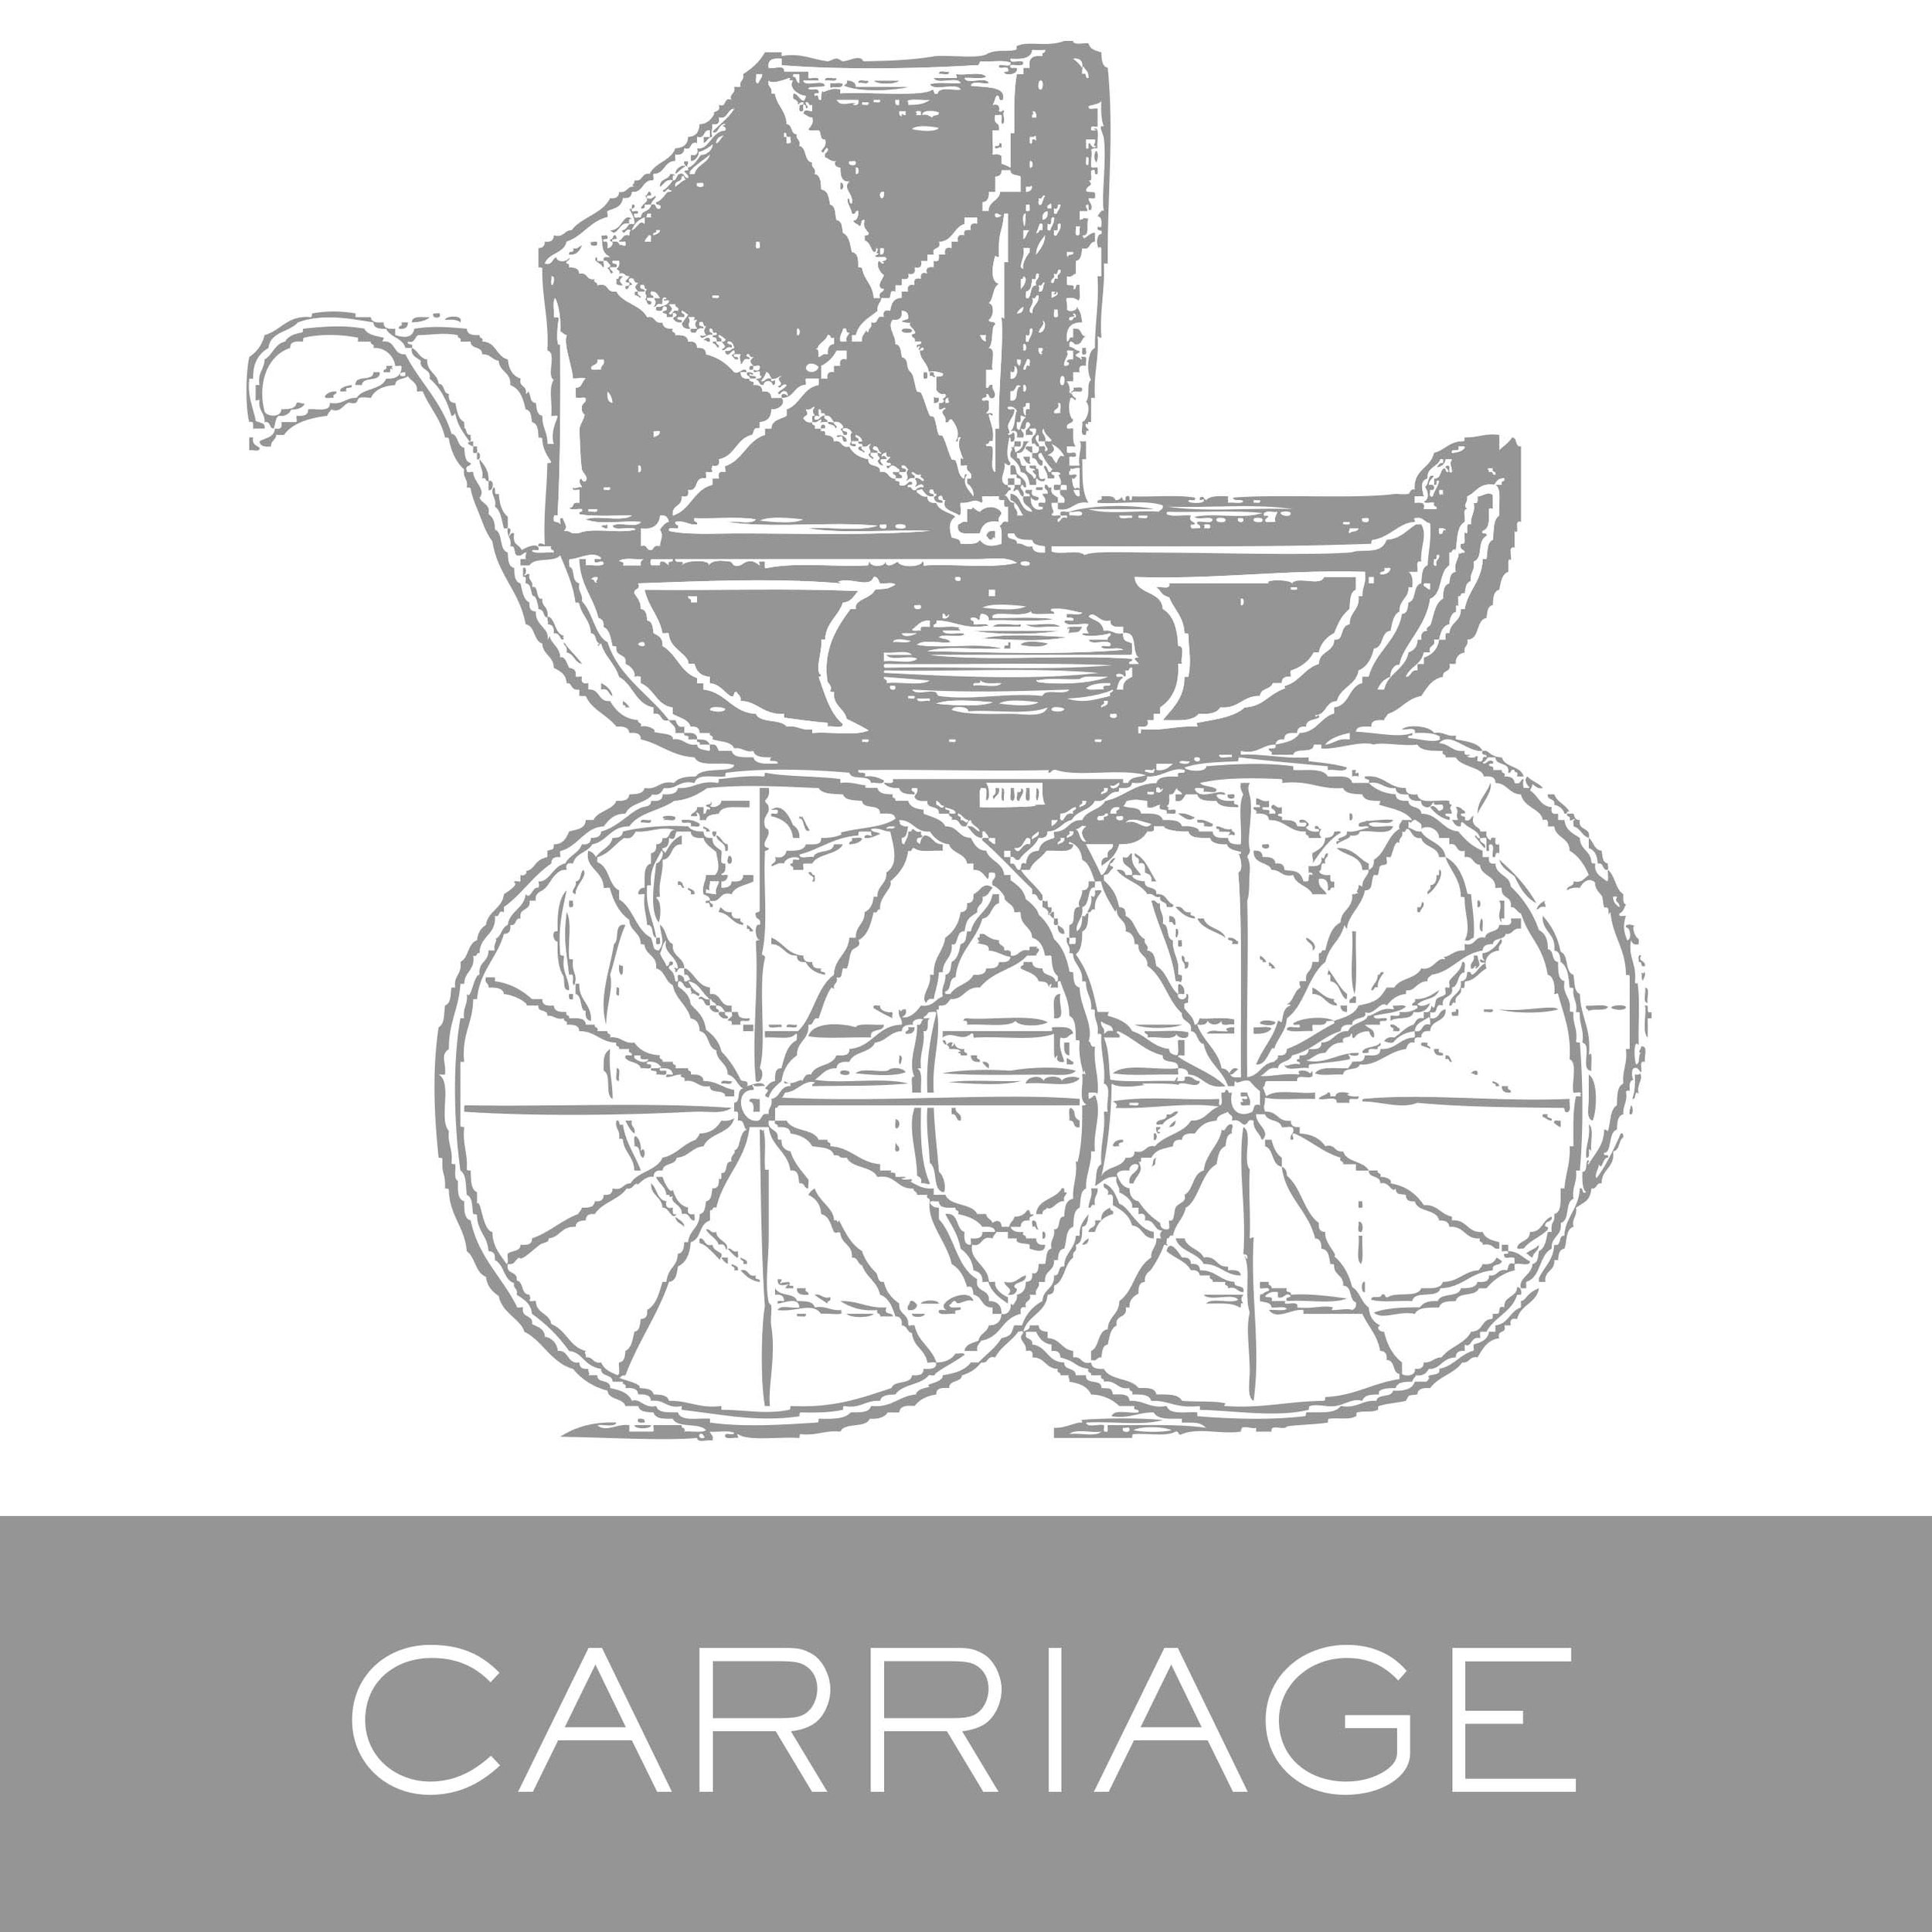 carriage.jpg